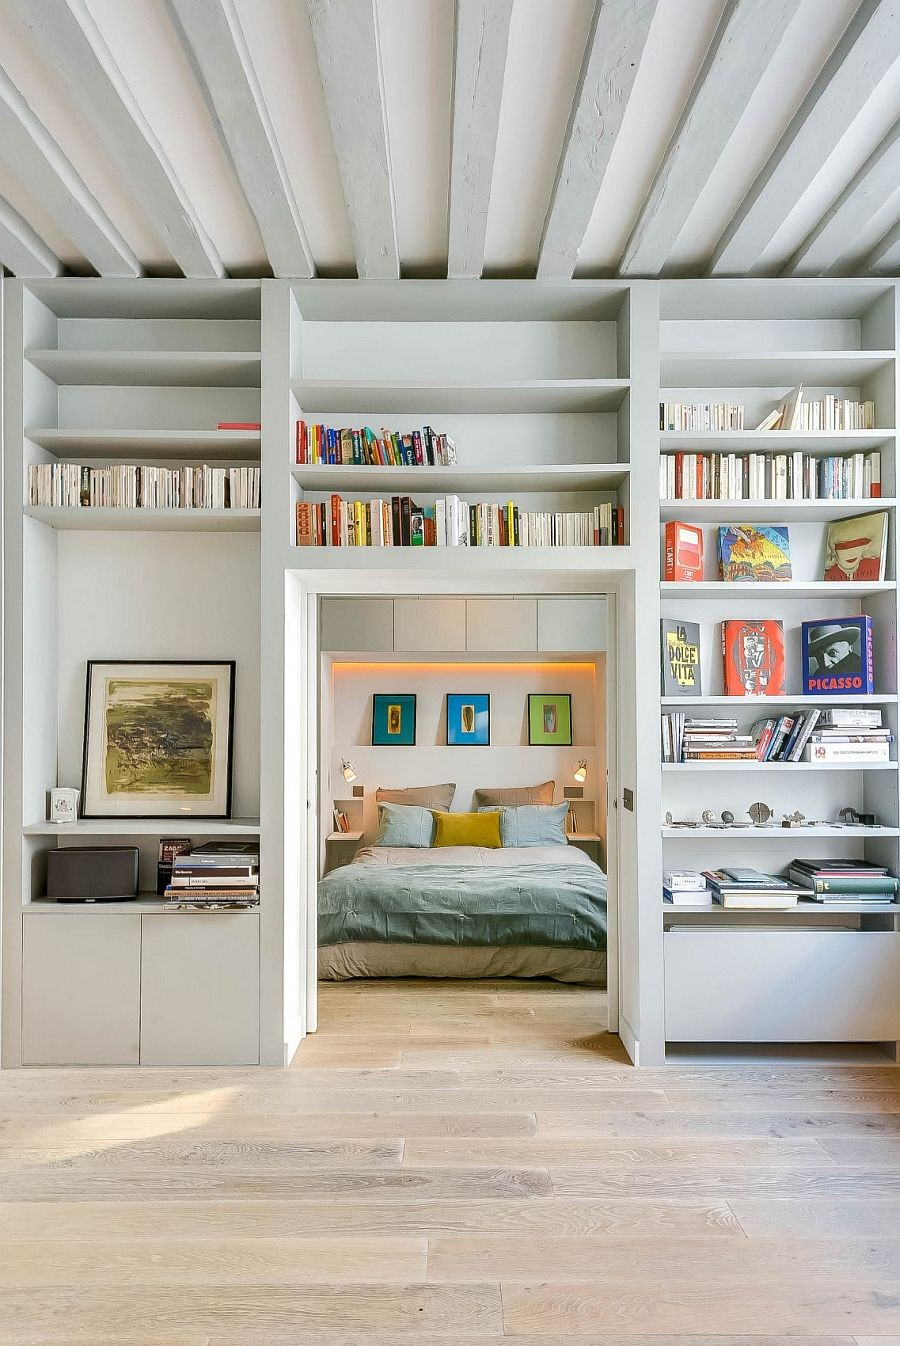 10-modern-French-apartment-interior-design-France-bedroom-books-wooden-floor-planks-ceiling-bed